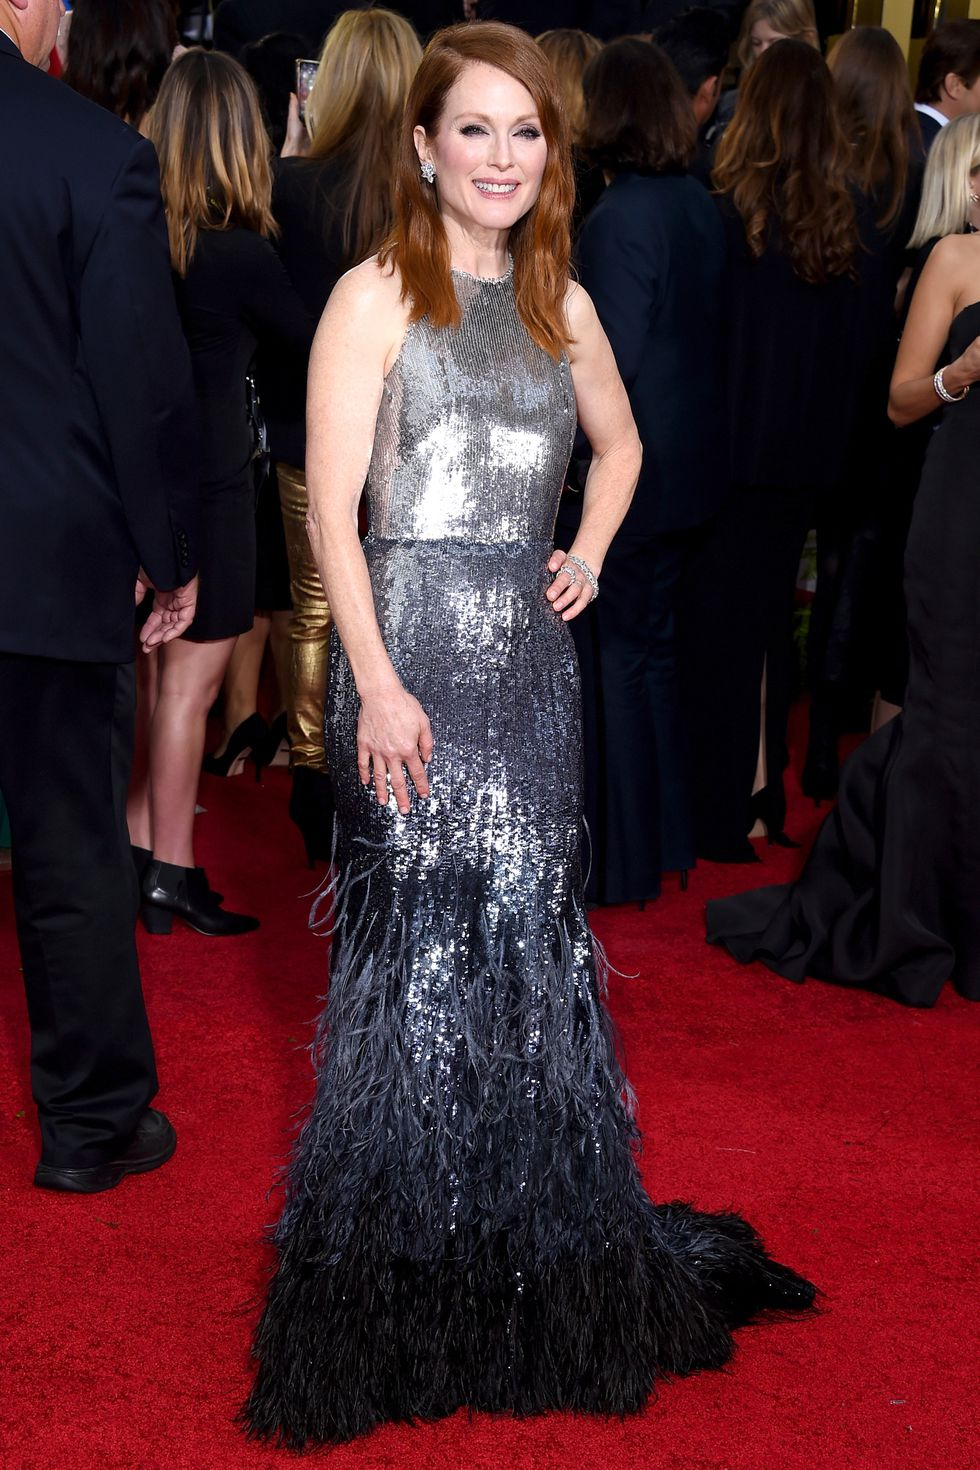 hbz-givenchy-2015-julianne-moore-gettyimages-461357084